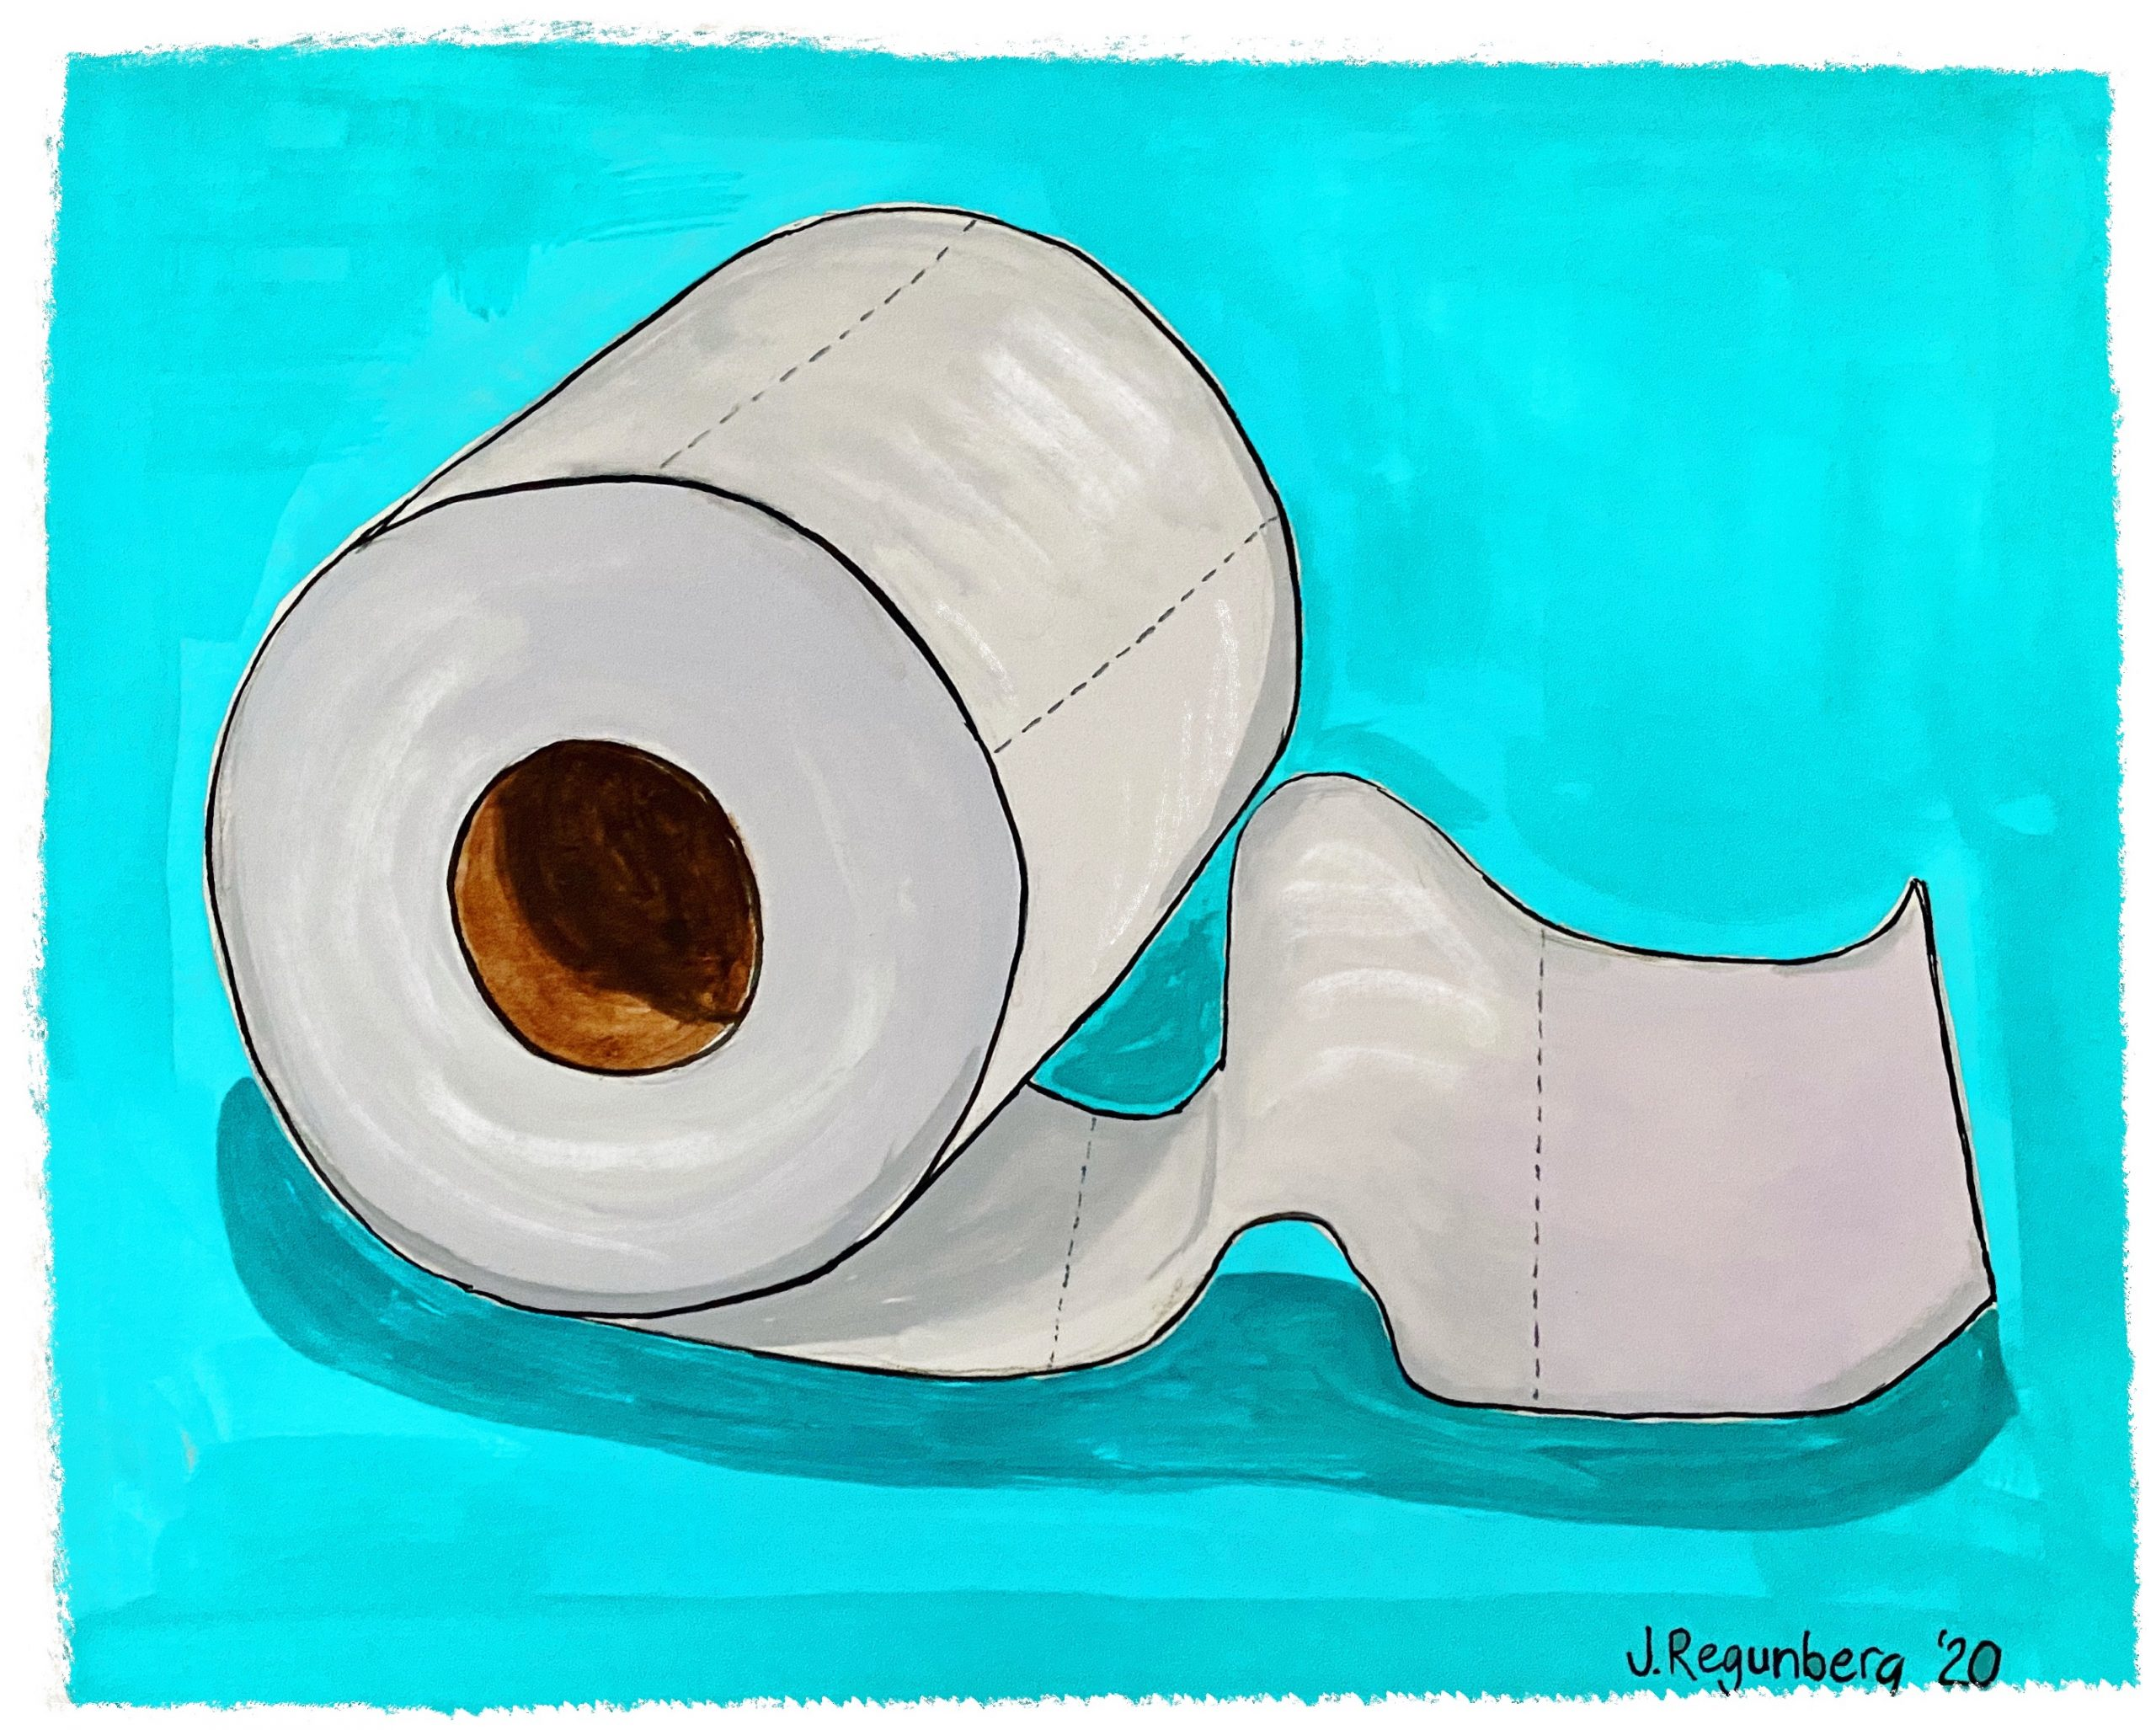 T is for Toilet Paper